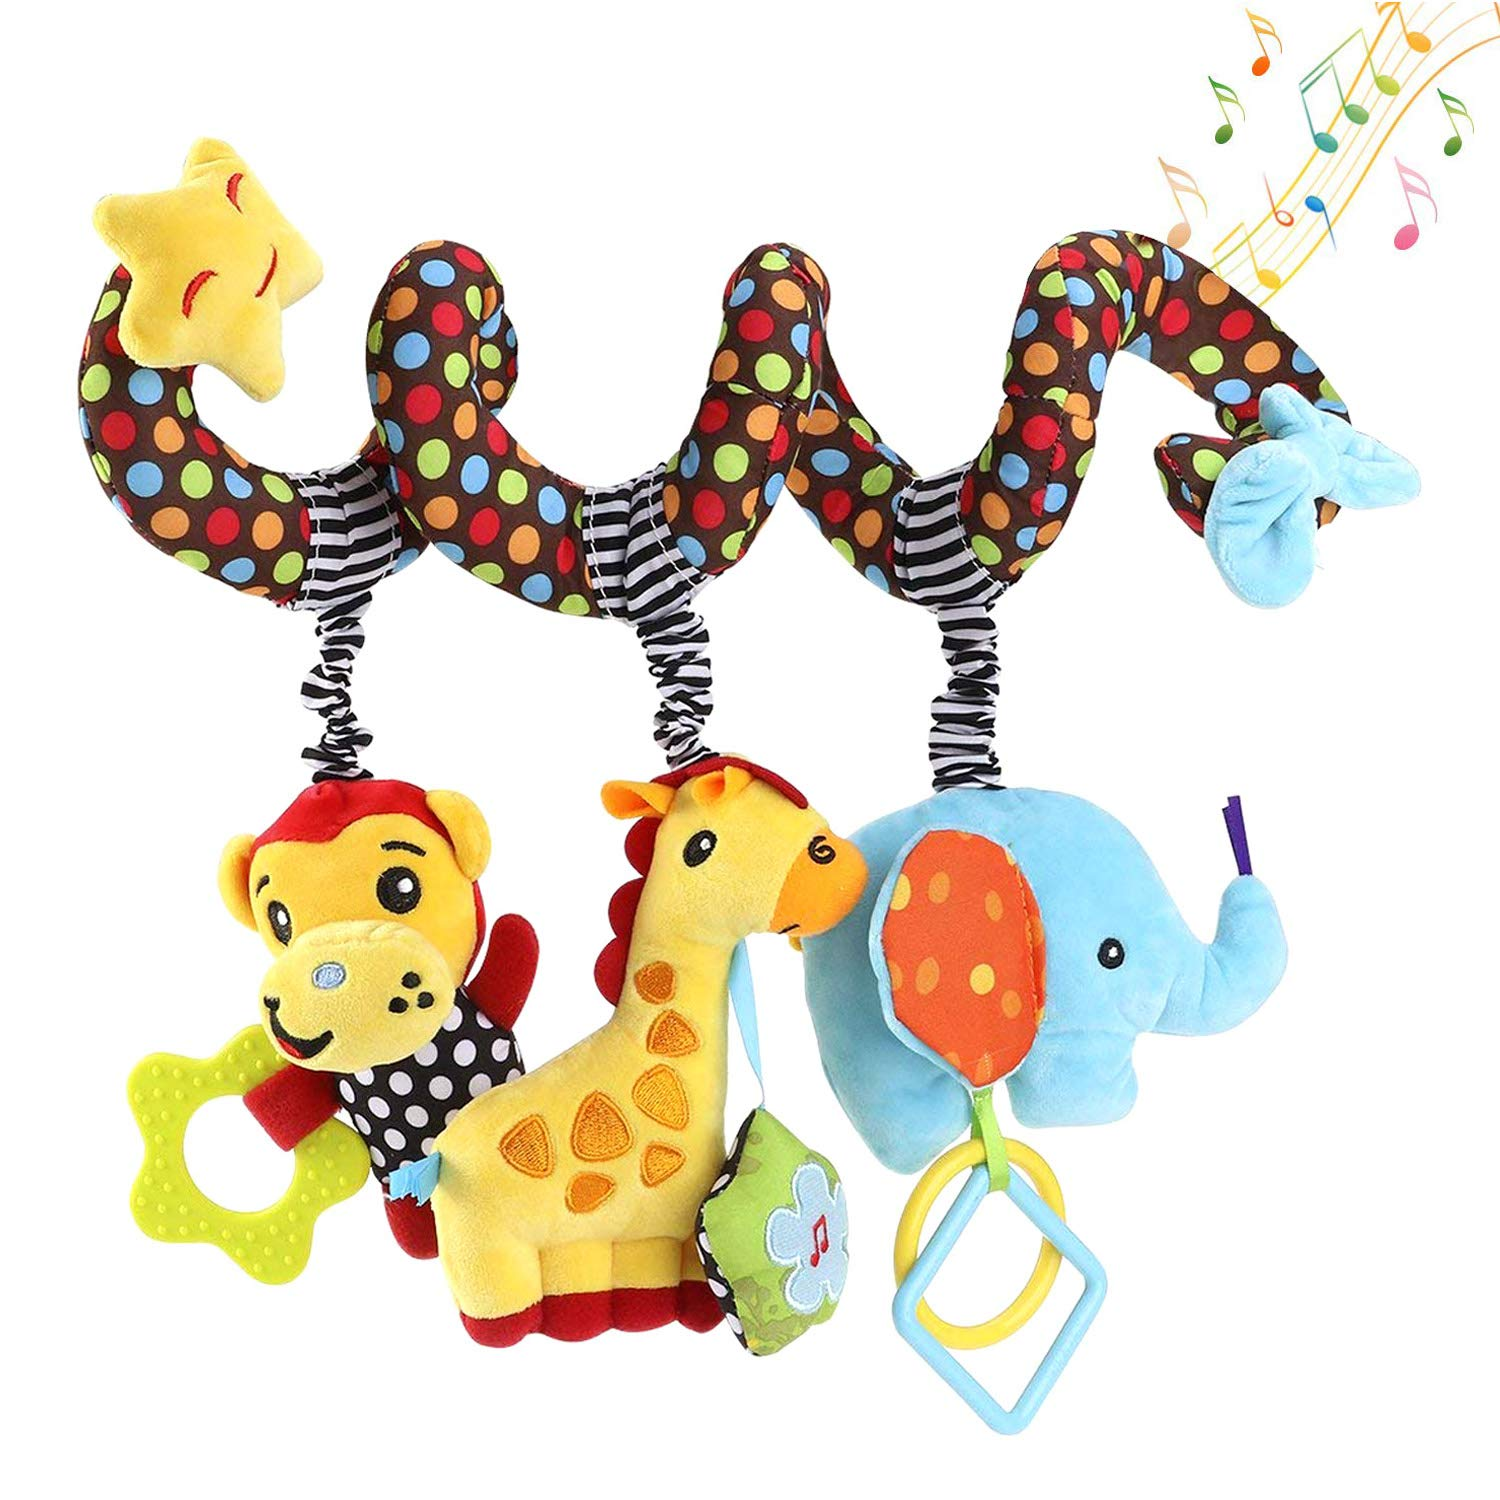 Hanging Toys for Car Seat Crib Mobile, willway Infant Baby Spiral Plush Toys for Crib Bed Stroller Car Seat Bar